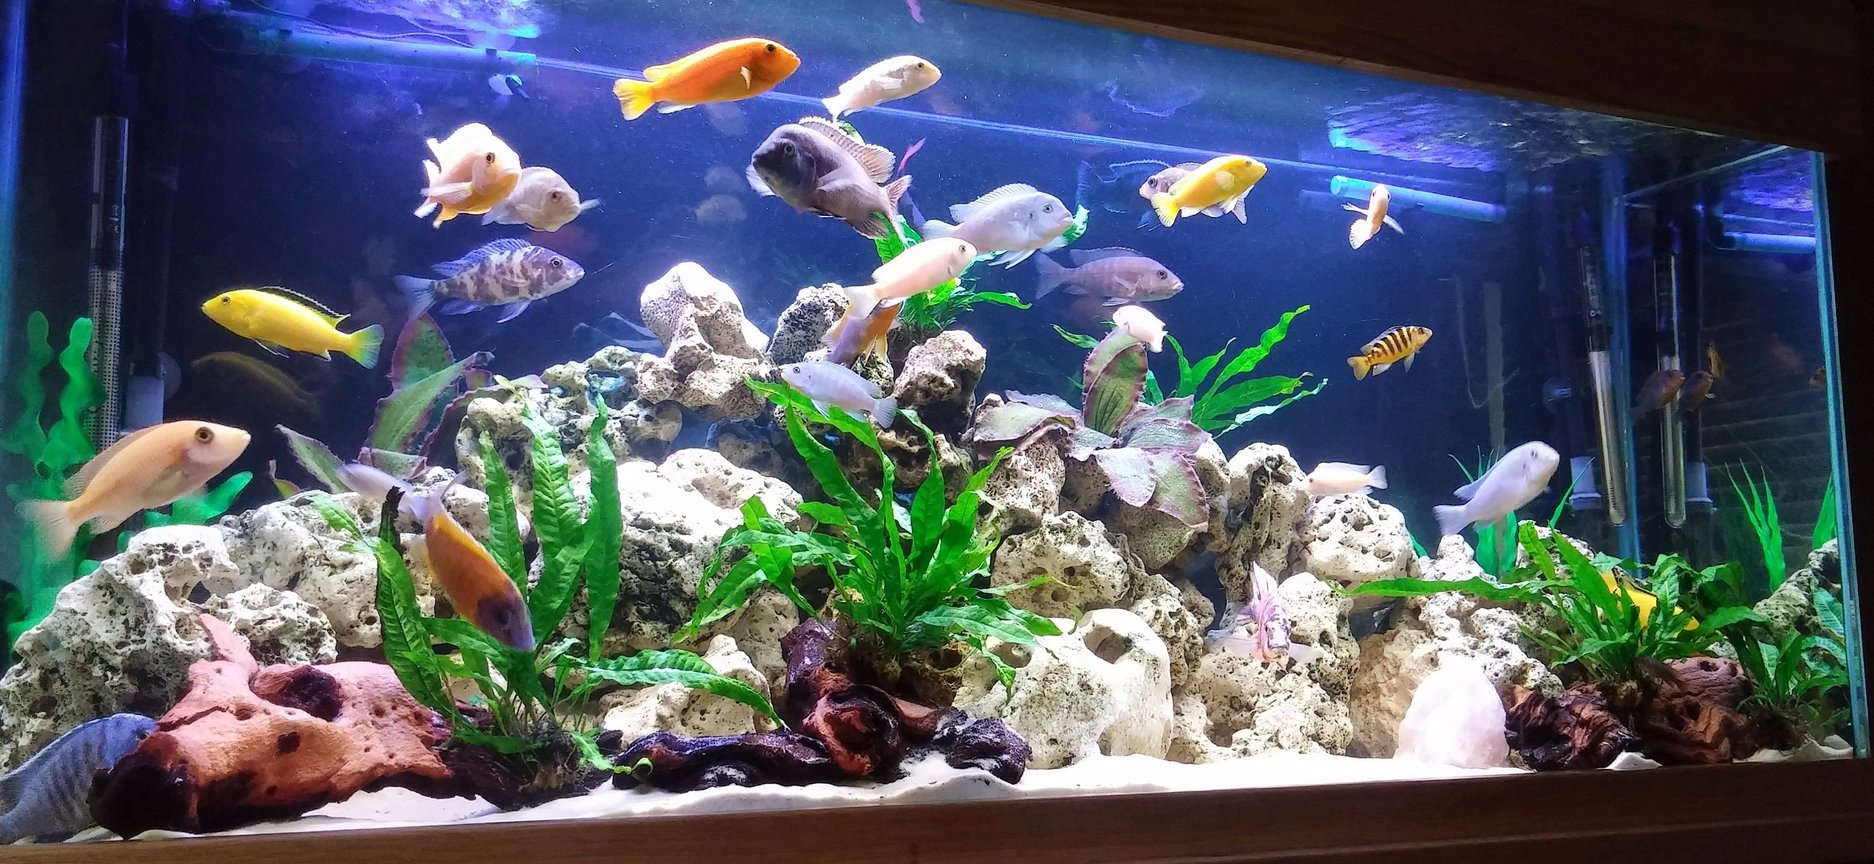 80 gallons freshwater fish tank (mostly fish and non-living decorations) - First Cichlid setup